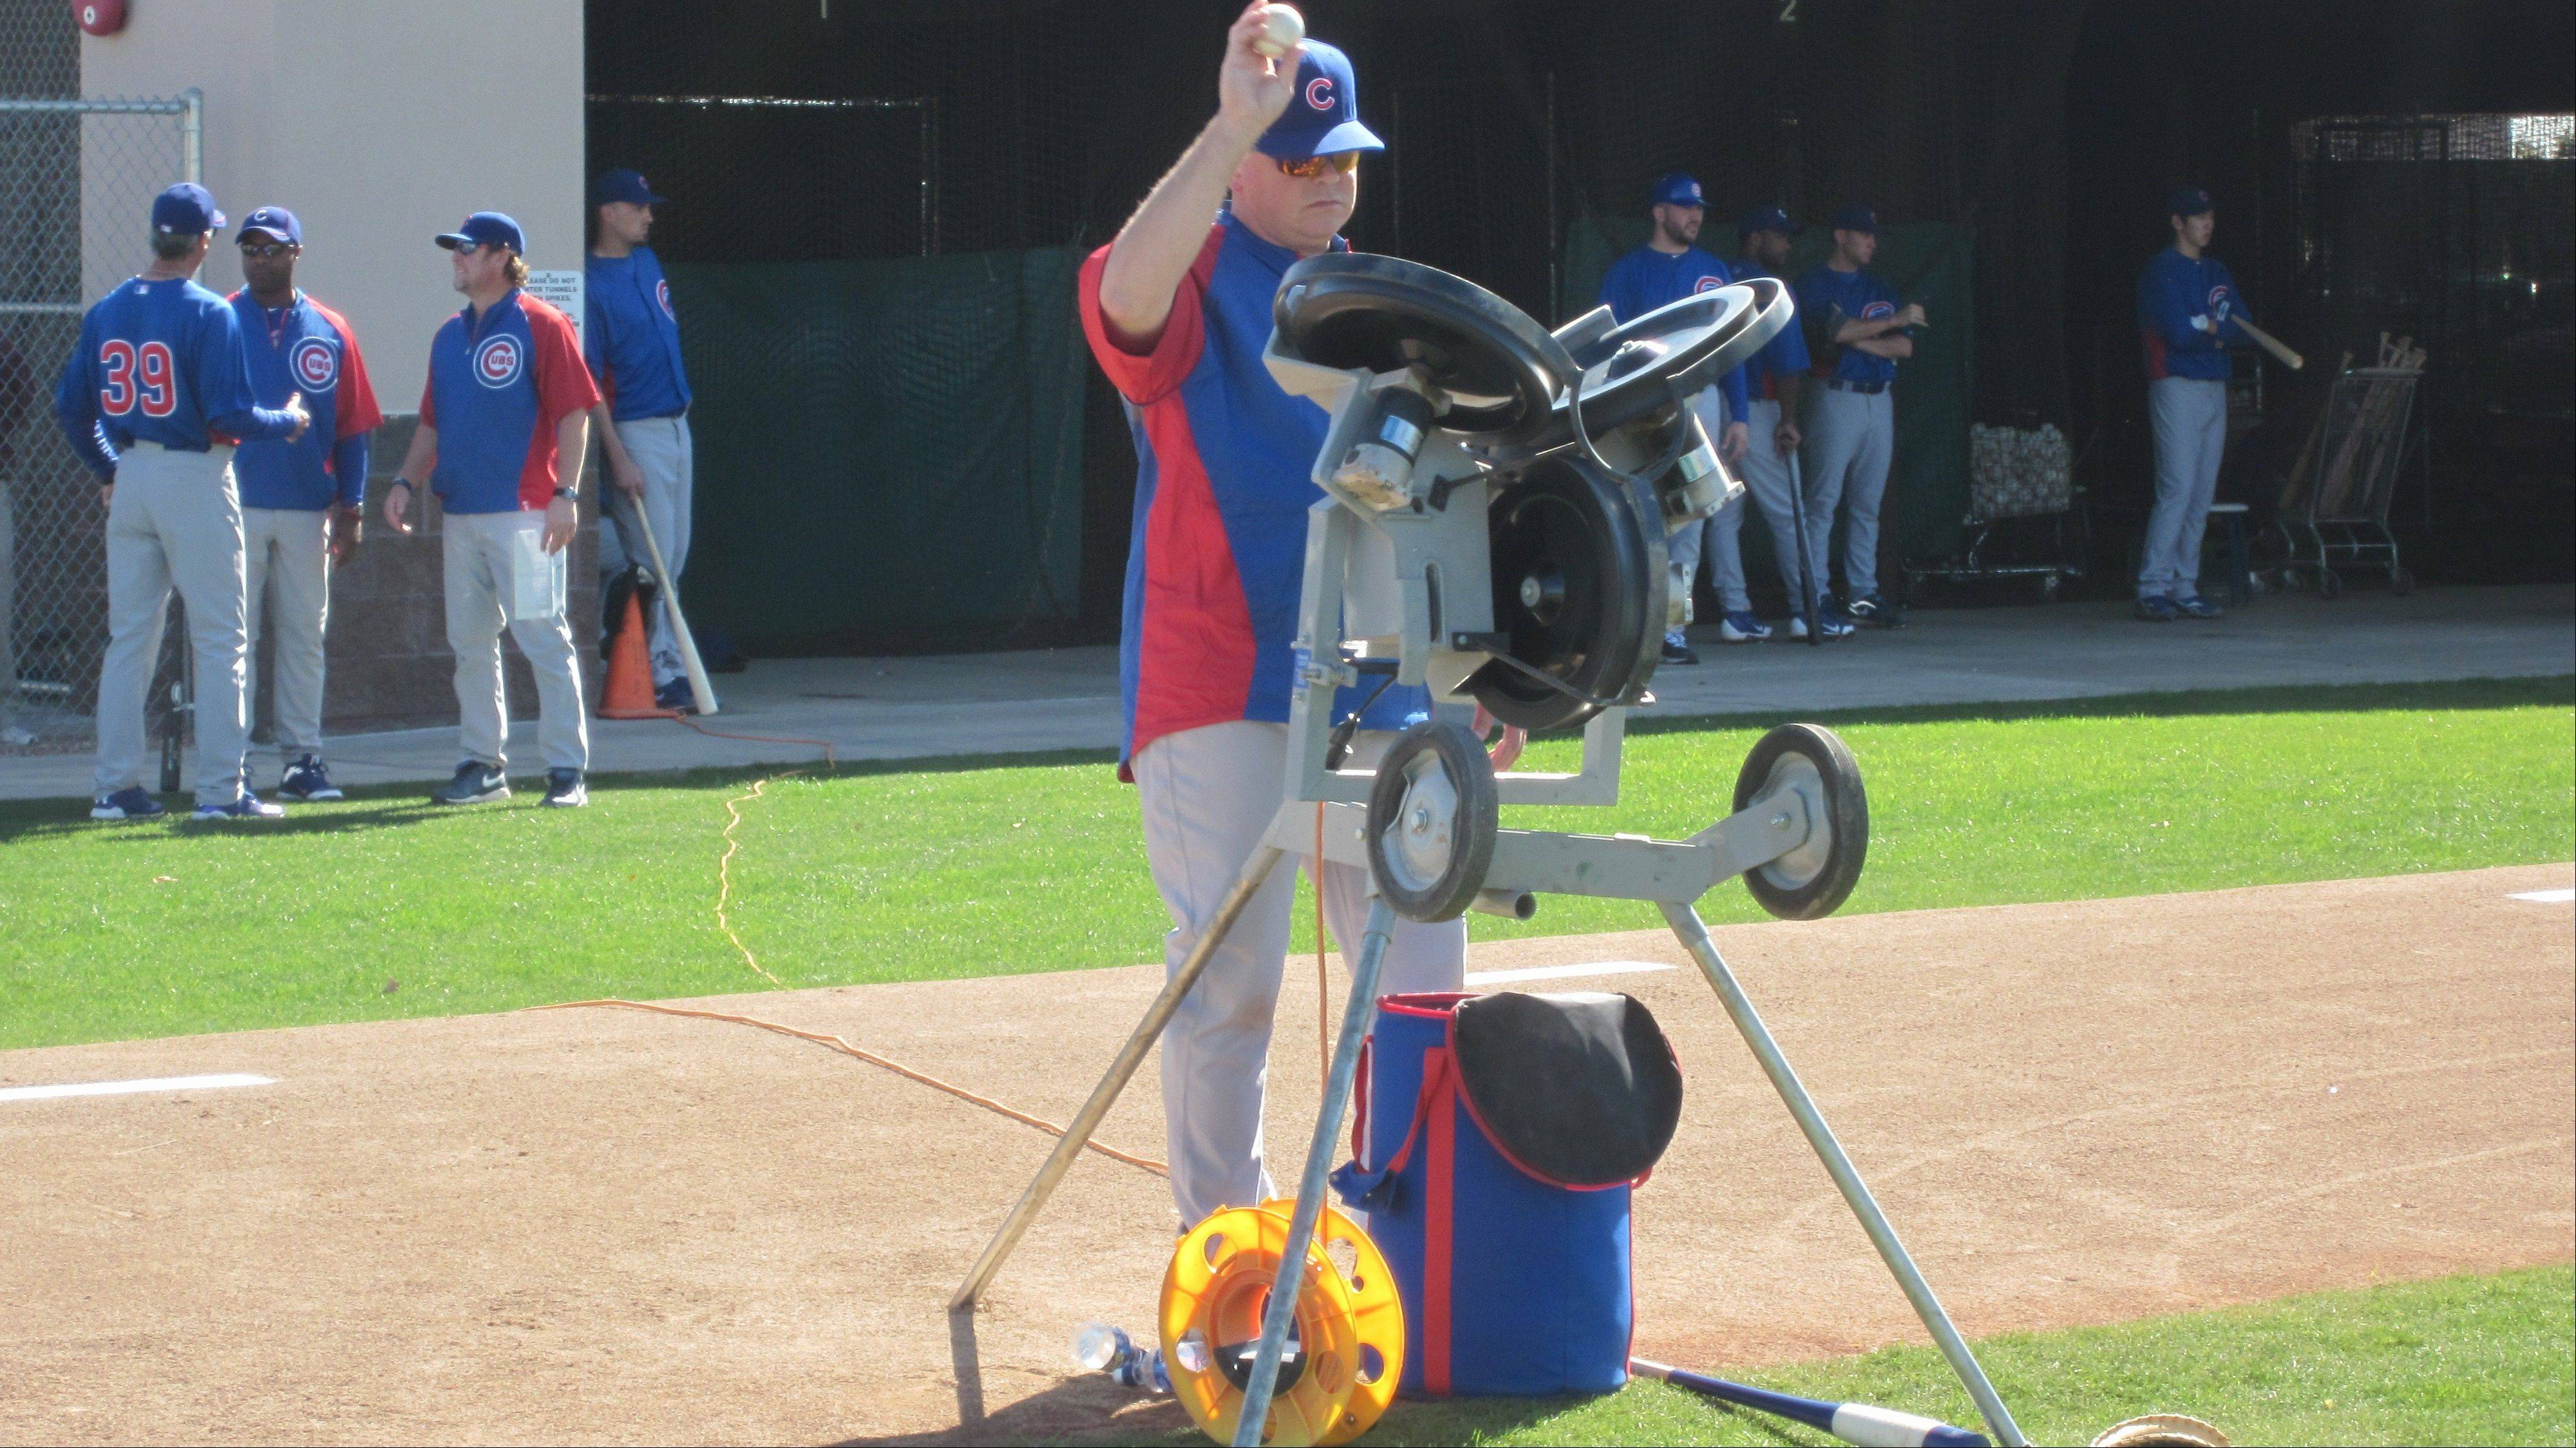 Marty Pevey runs the pitching machine to get in some extra work for Cubs catchers trying to handle tough pitches thrown in the dirt.